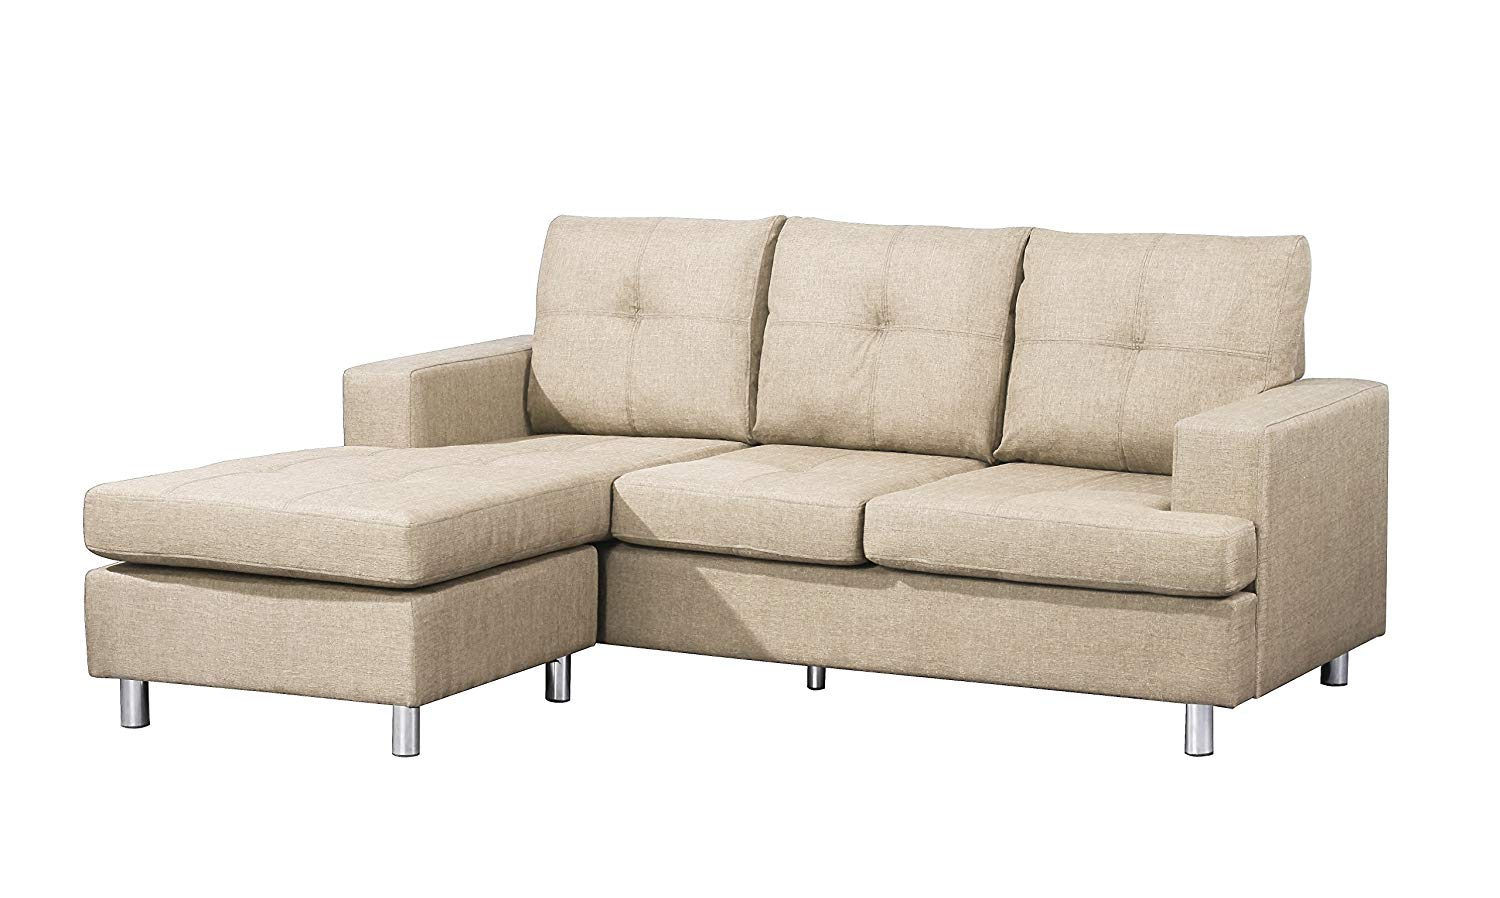 """Container Furniture Direct S0104 Fancy Linen Upholstered Contemporary Reversible Sectional Sofa, 76.5"""", Beige"""